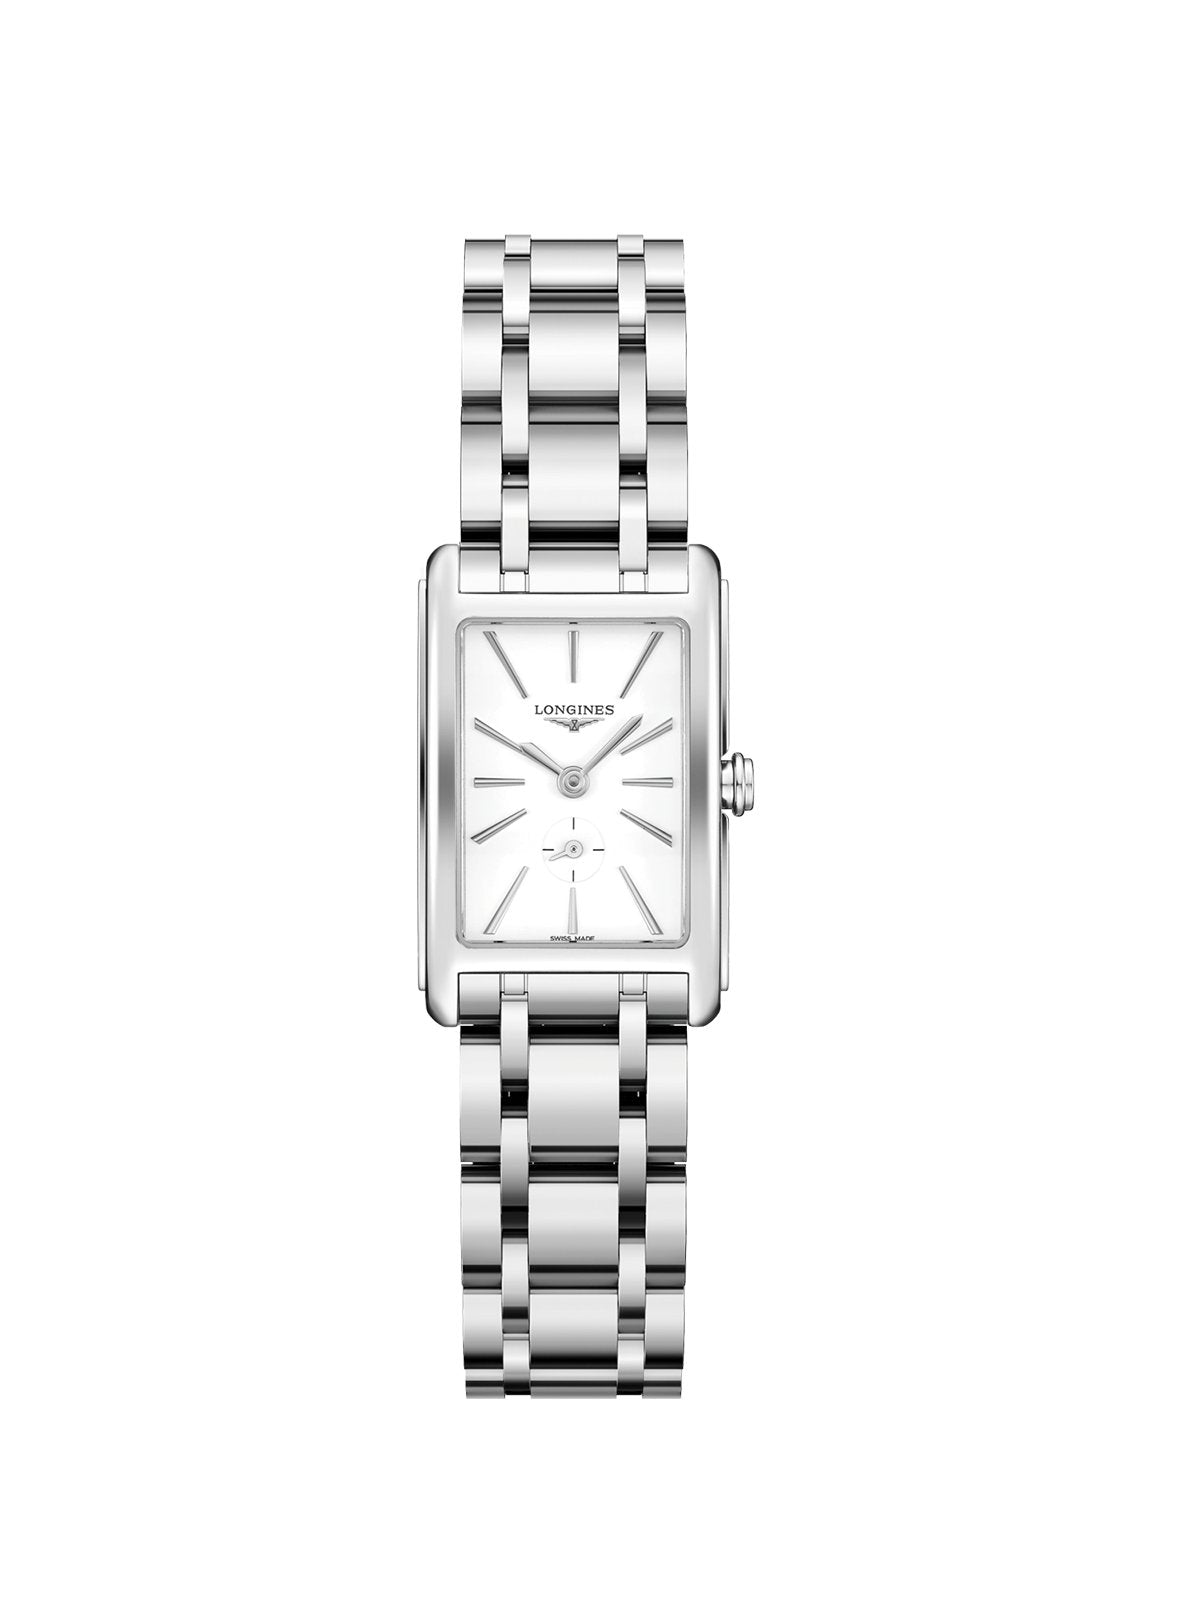 Longines DolceVita Ladies Watch 20.8 x 32mm L5.255.4.11.6